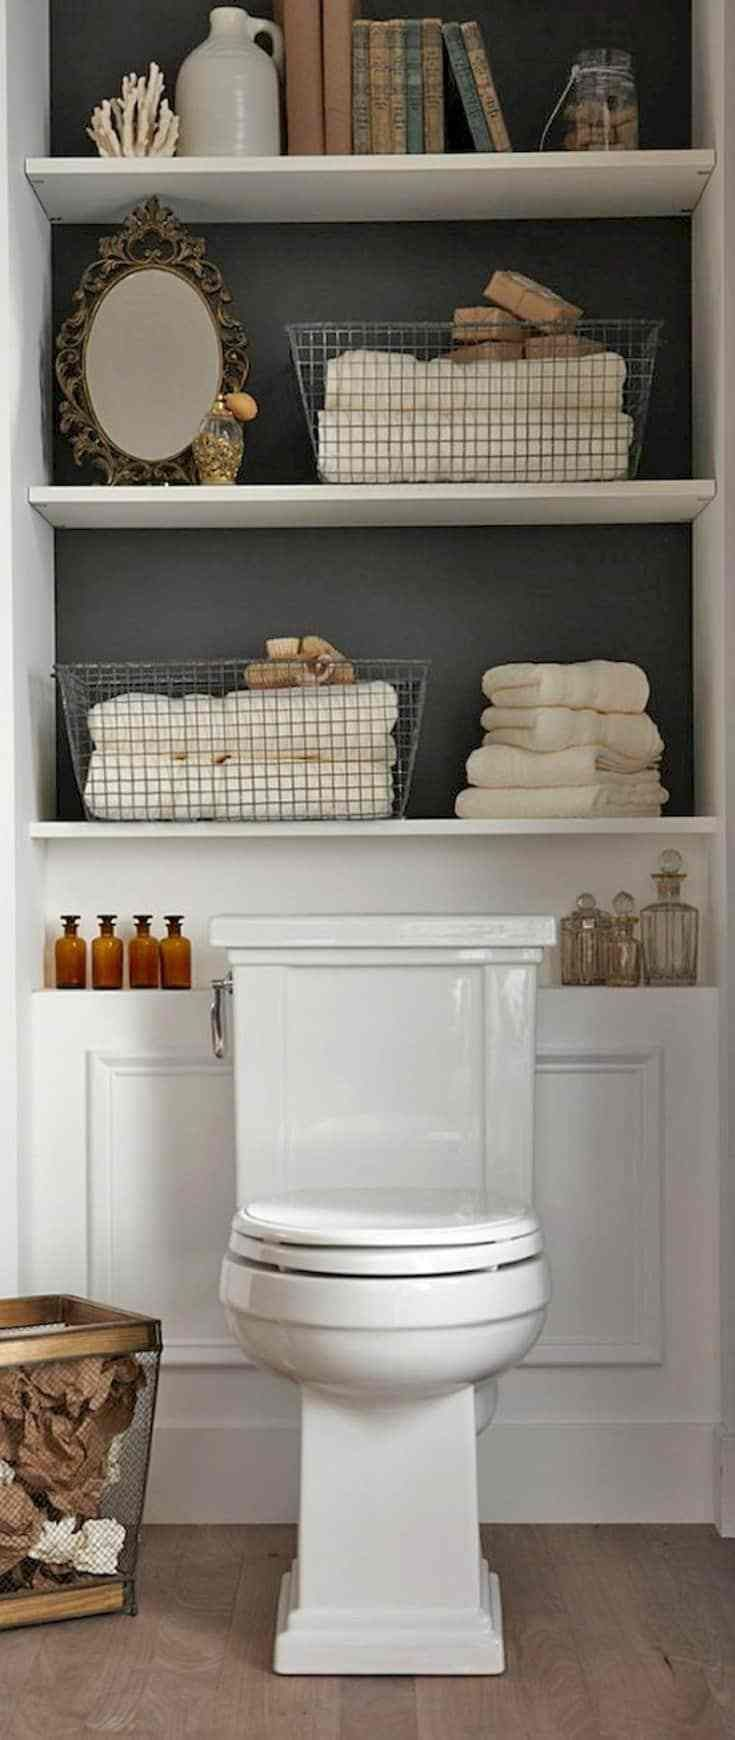 10 Best Small Bathroom Storage Ideas for an Elegant Home images